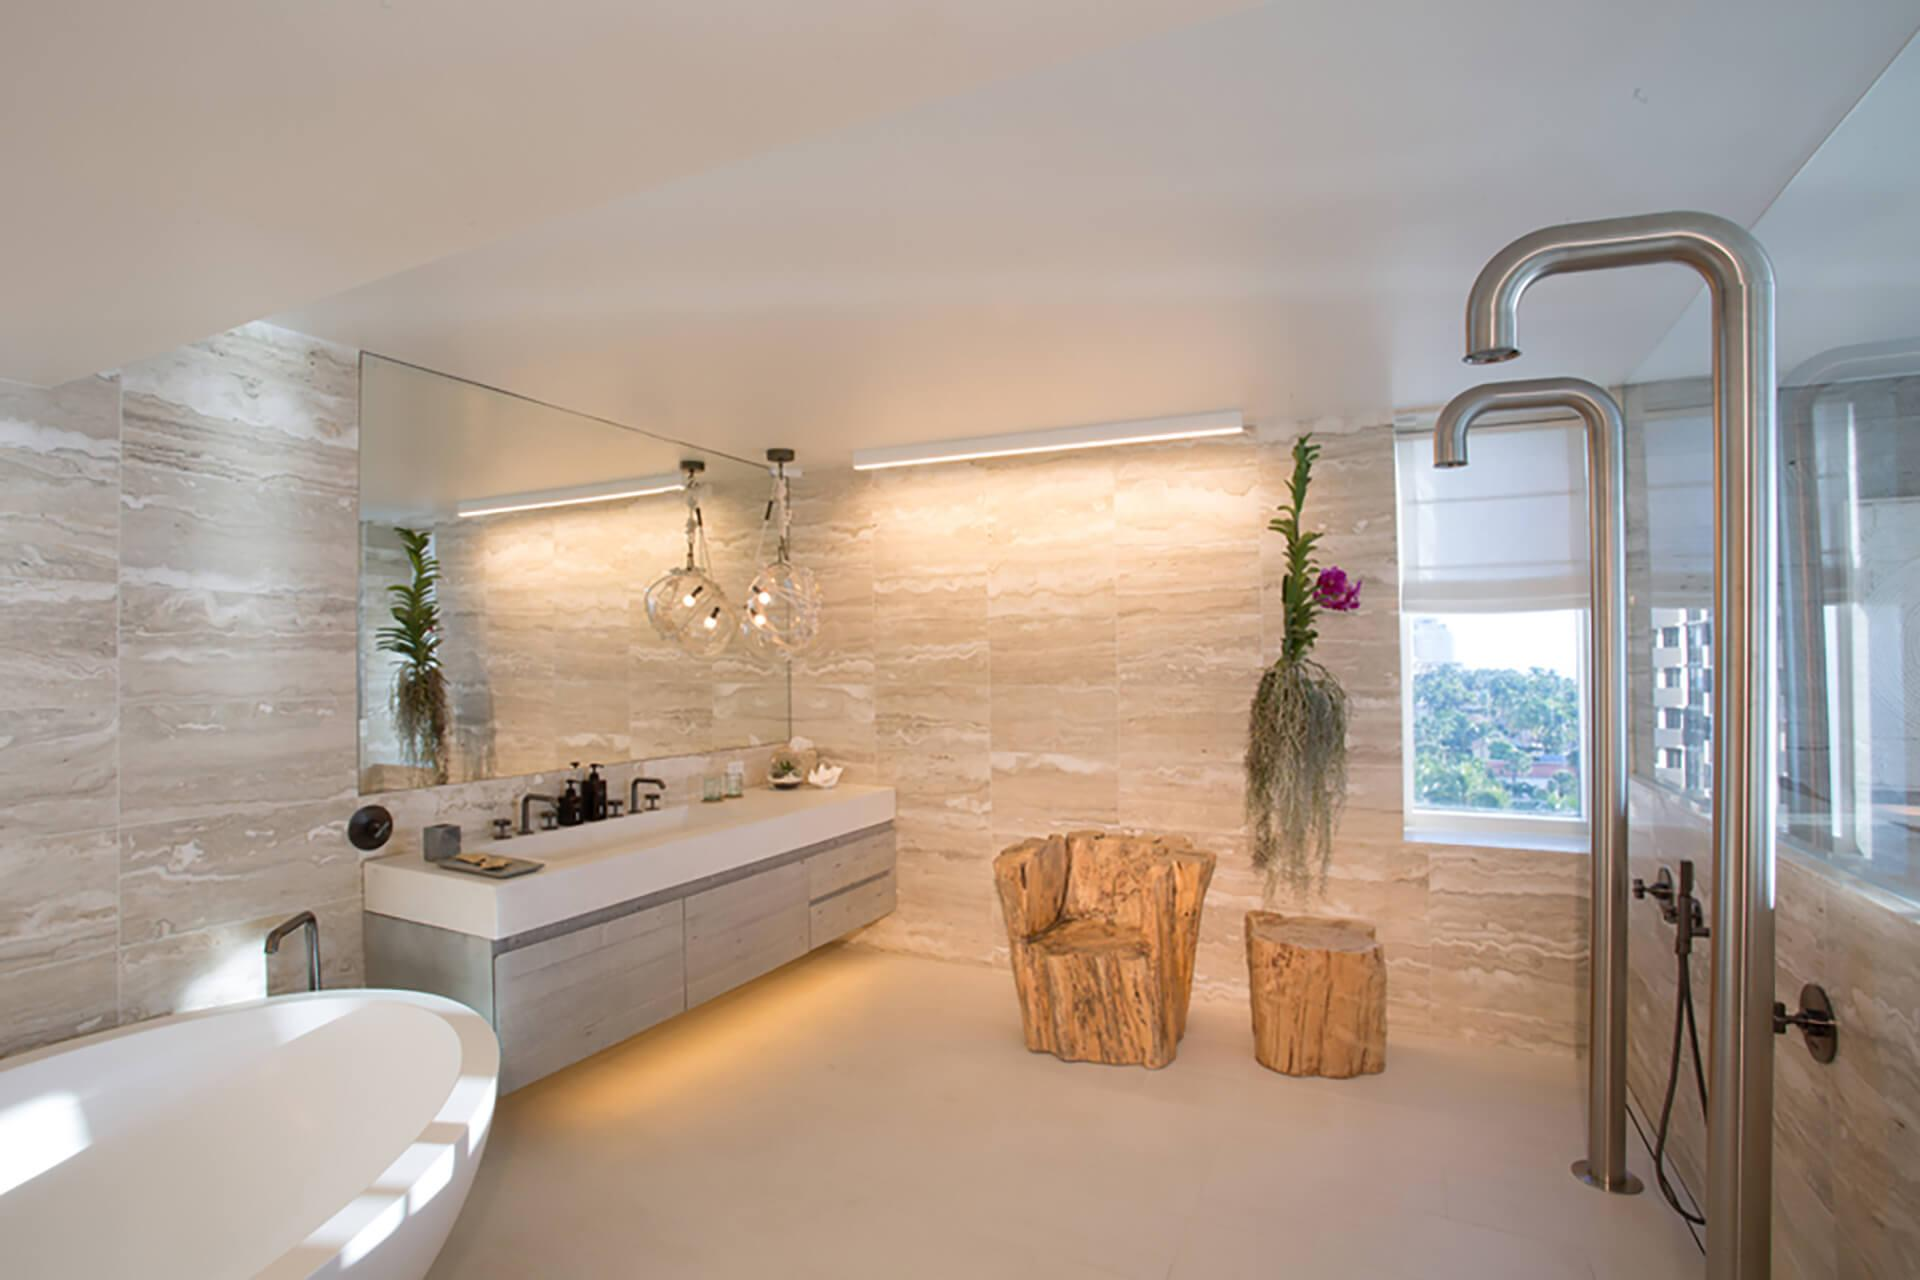 Presidential Suite at 1 Hotel South Beach | Bathroom